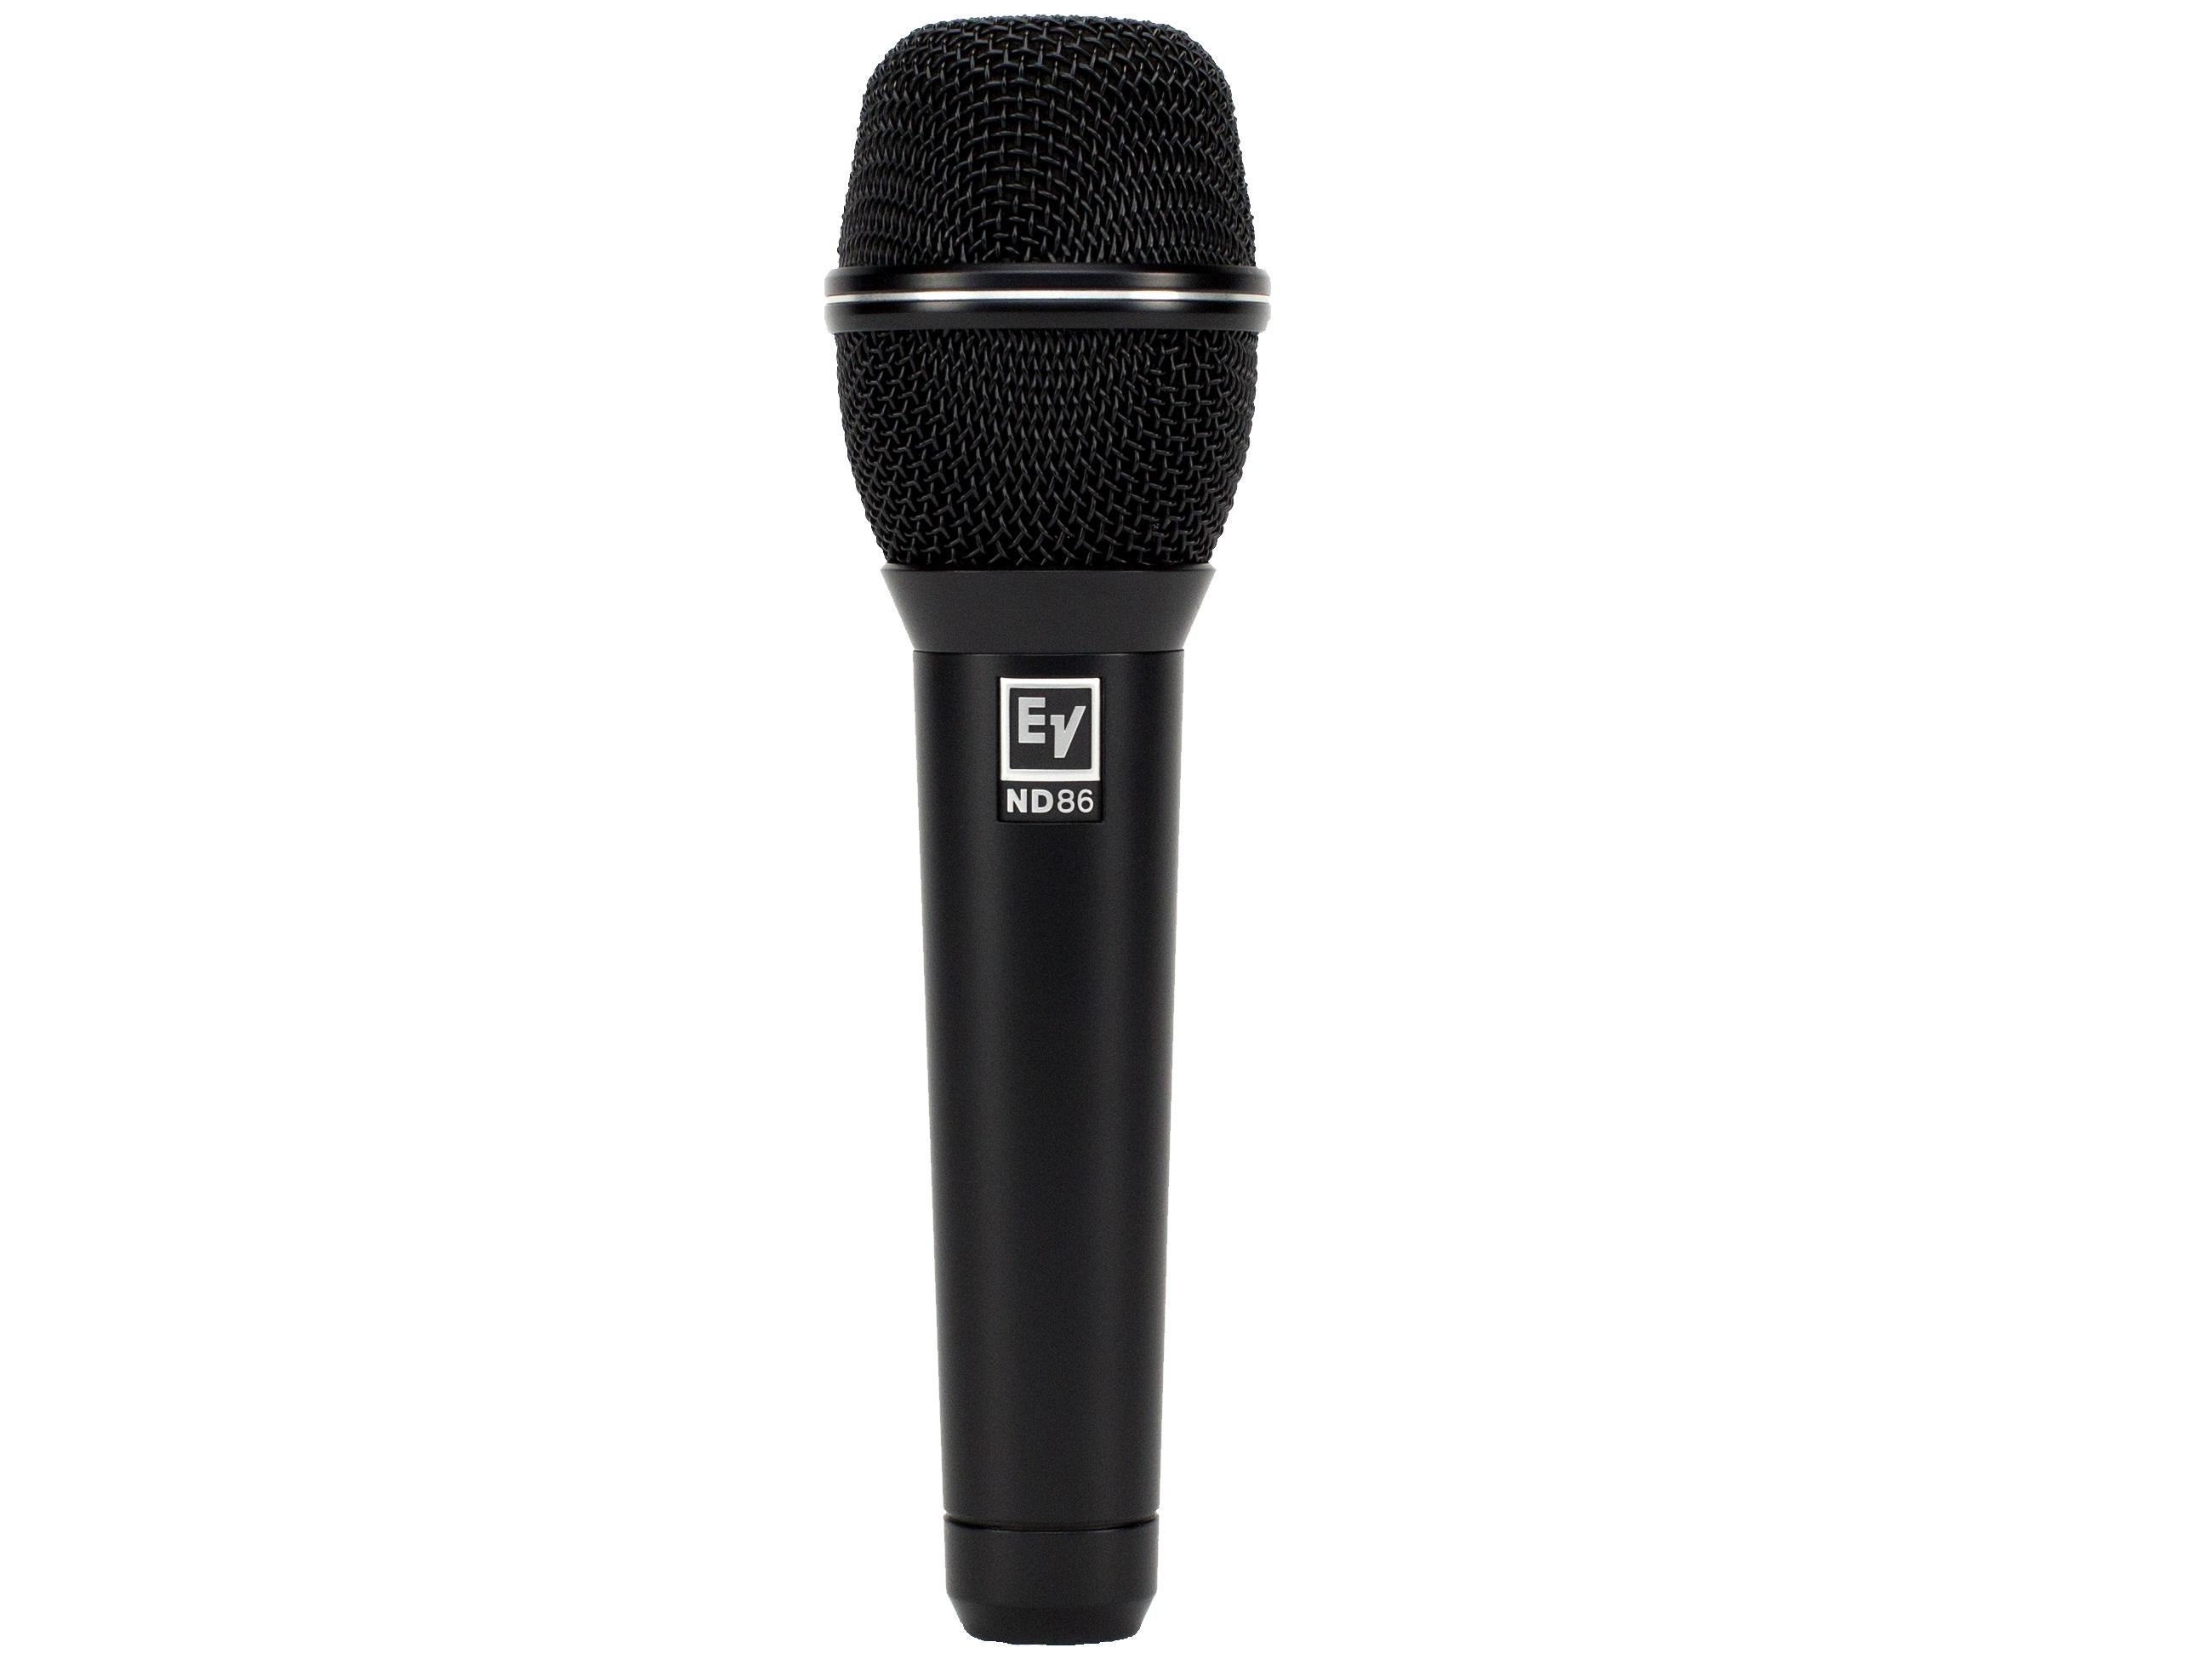 Electro-Voice ND86 7.19 inch Supercardioid Dynamic Vocal Microphone